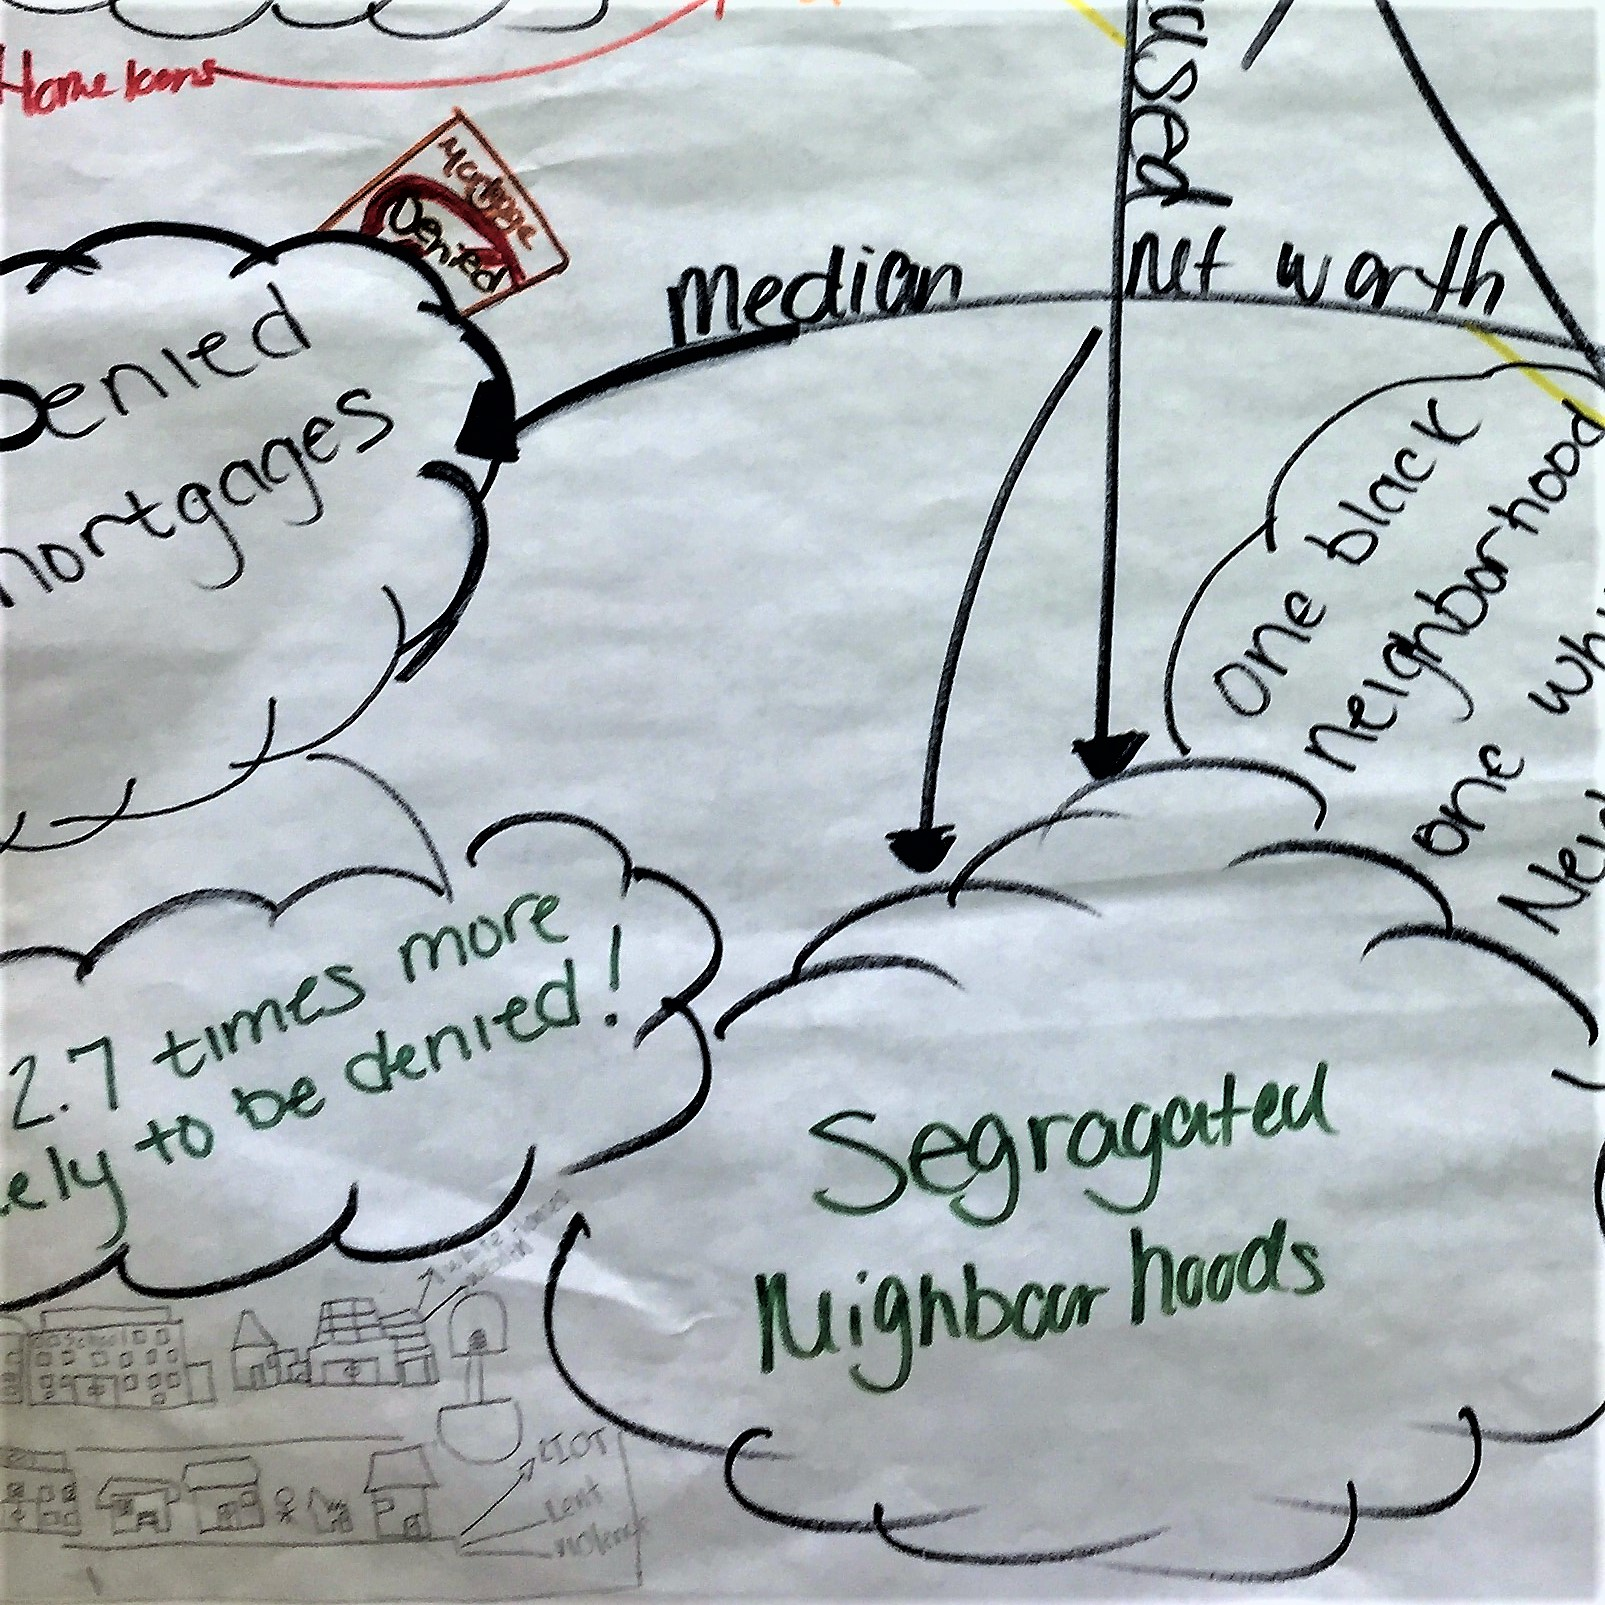 Casey Stockton's student mind map illustration